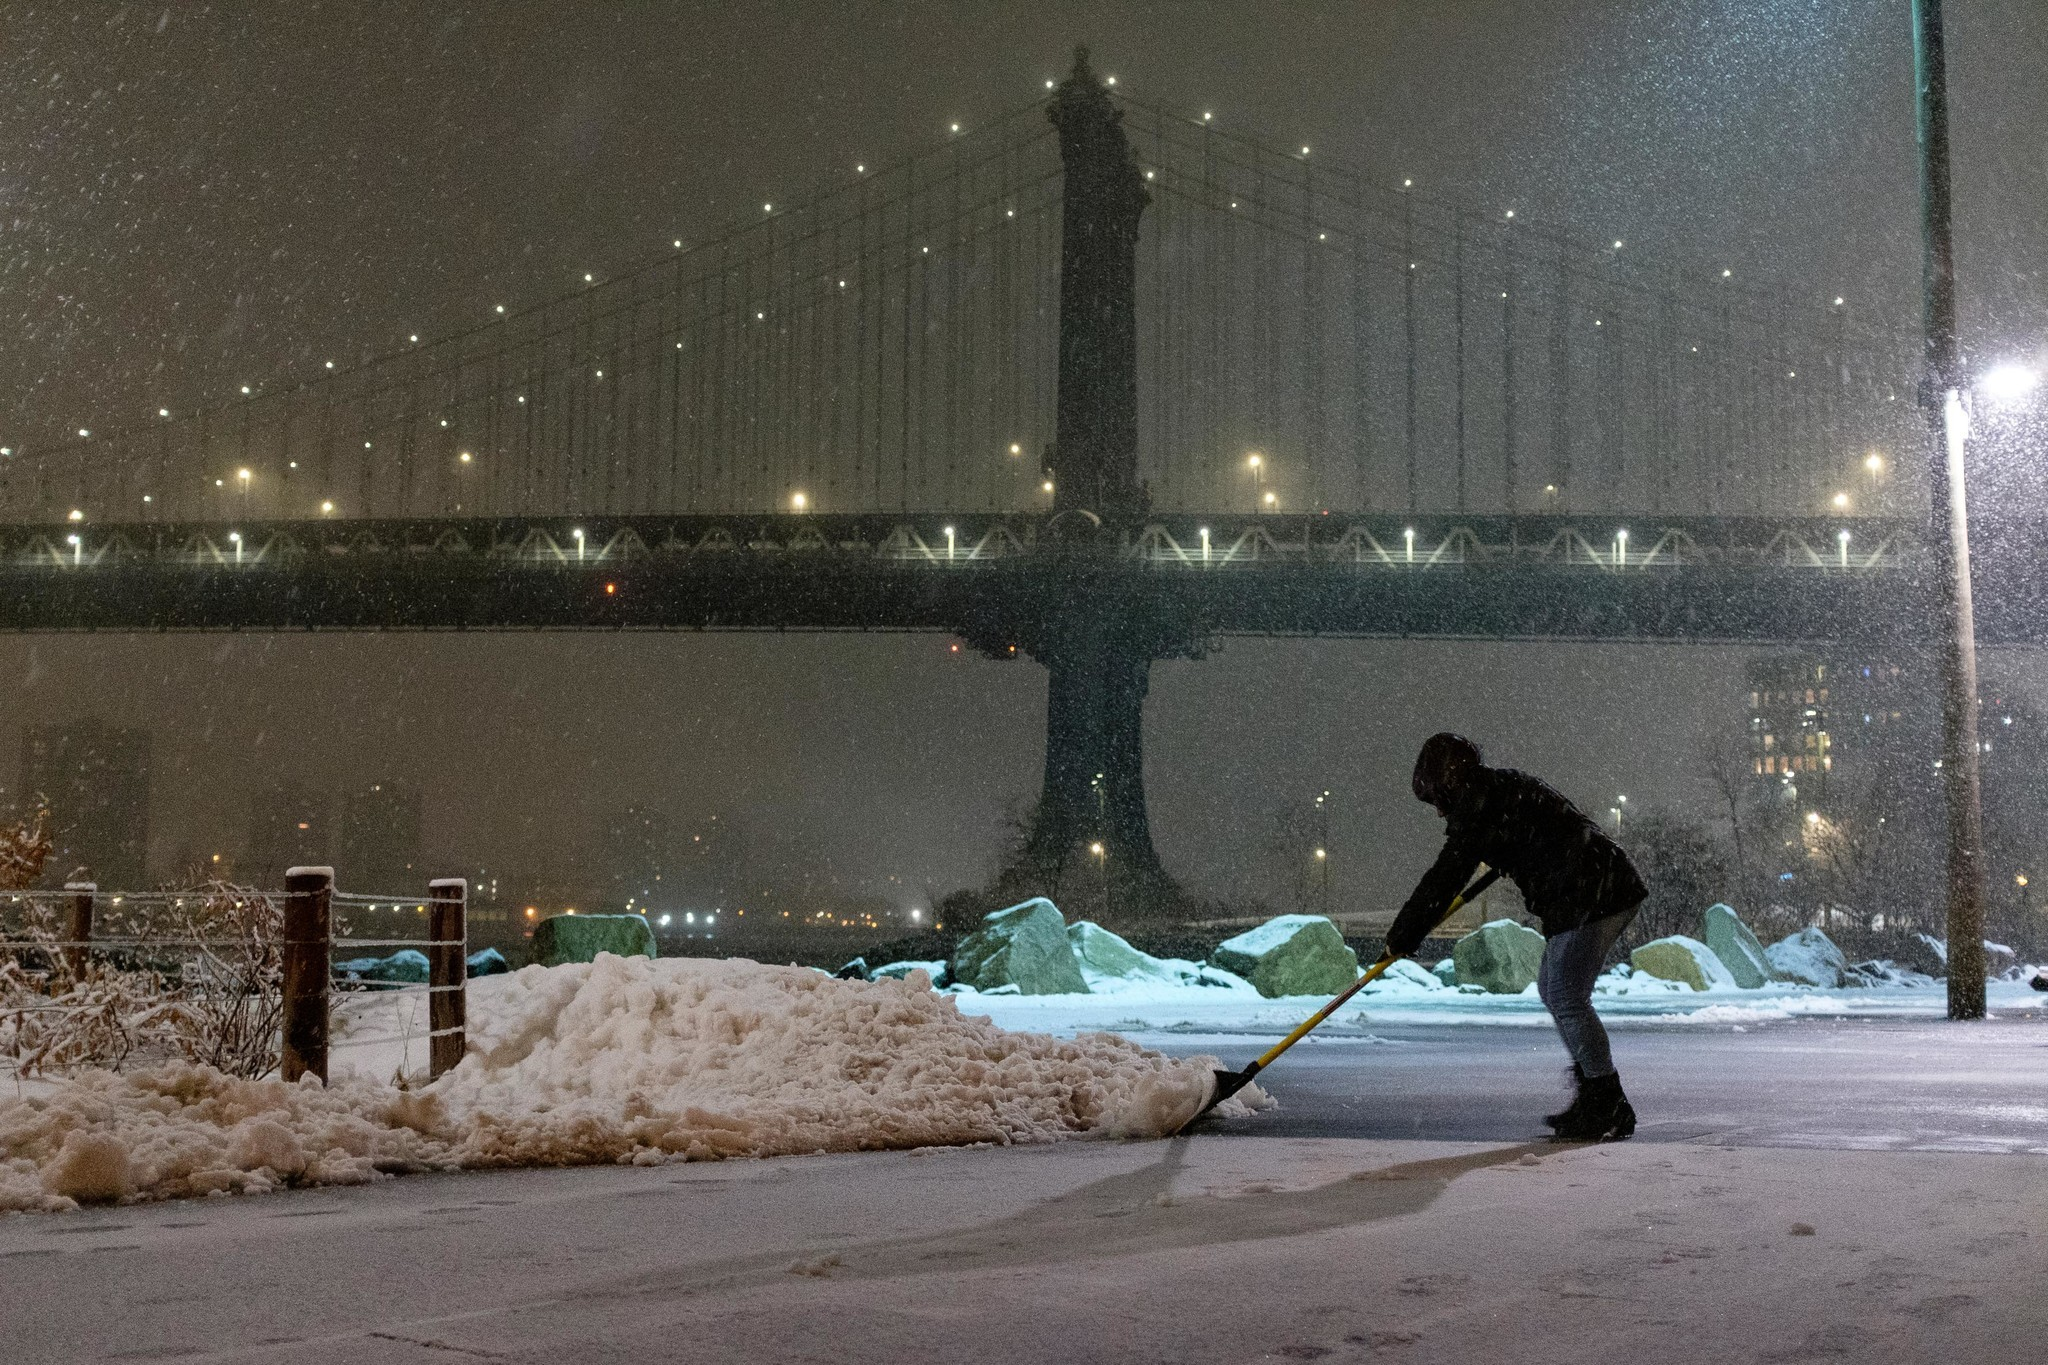 NYC may see snow, wintery mix as storm sweeps across country on the year's busiest travel weekend